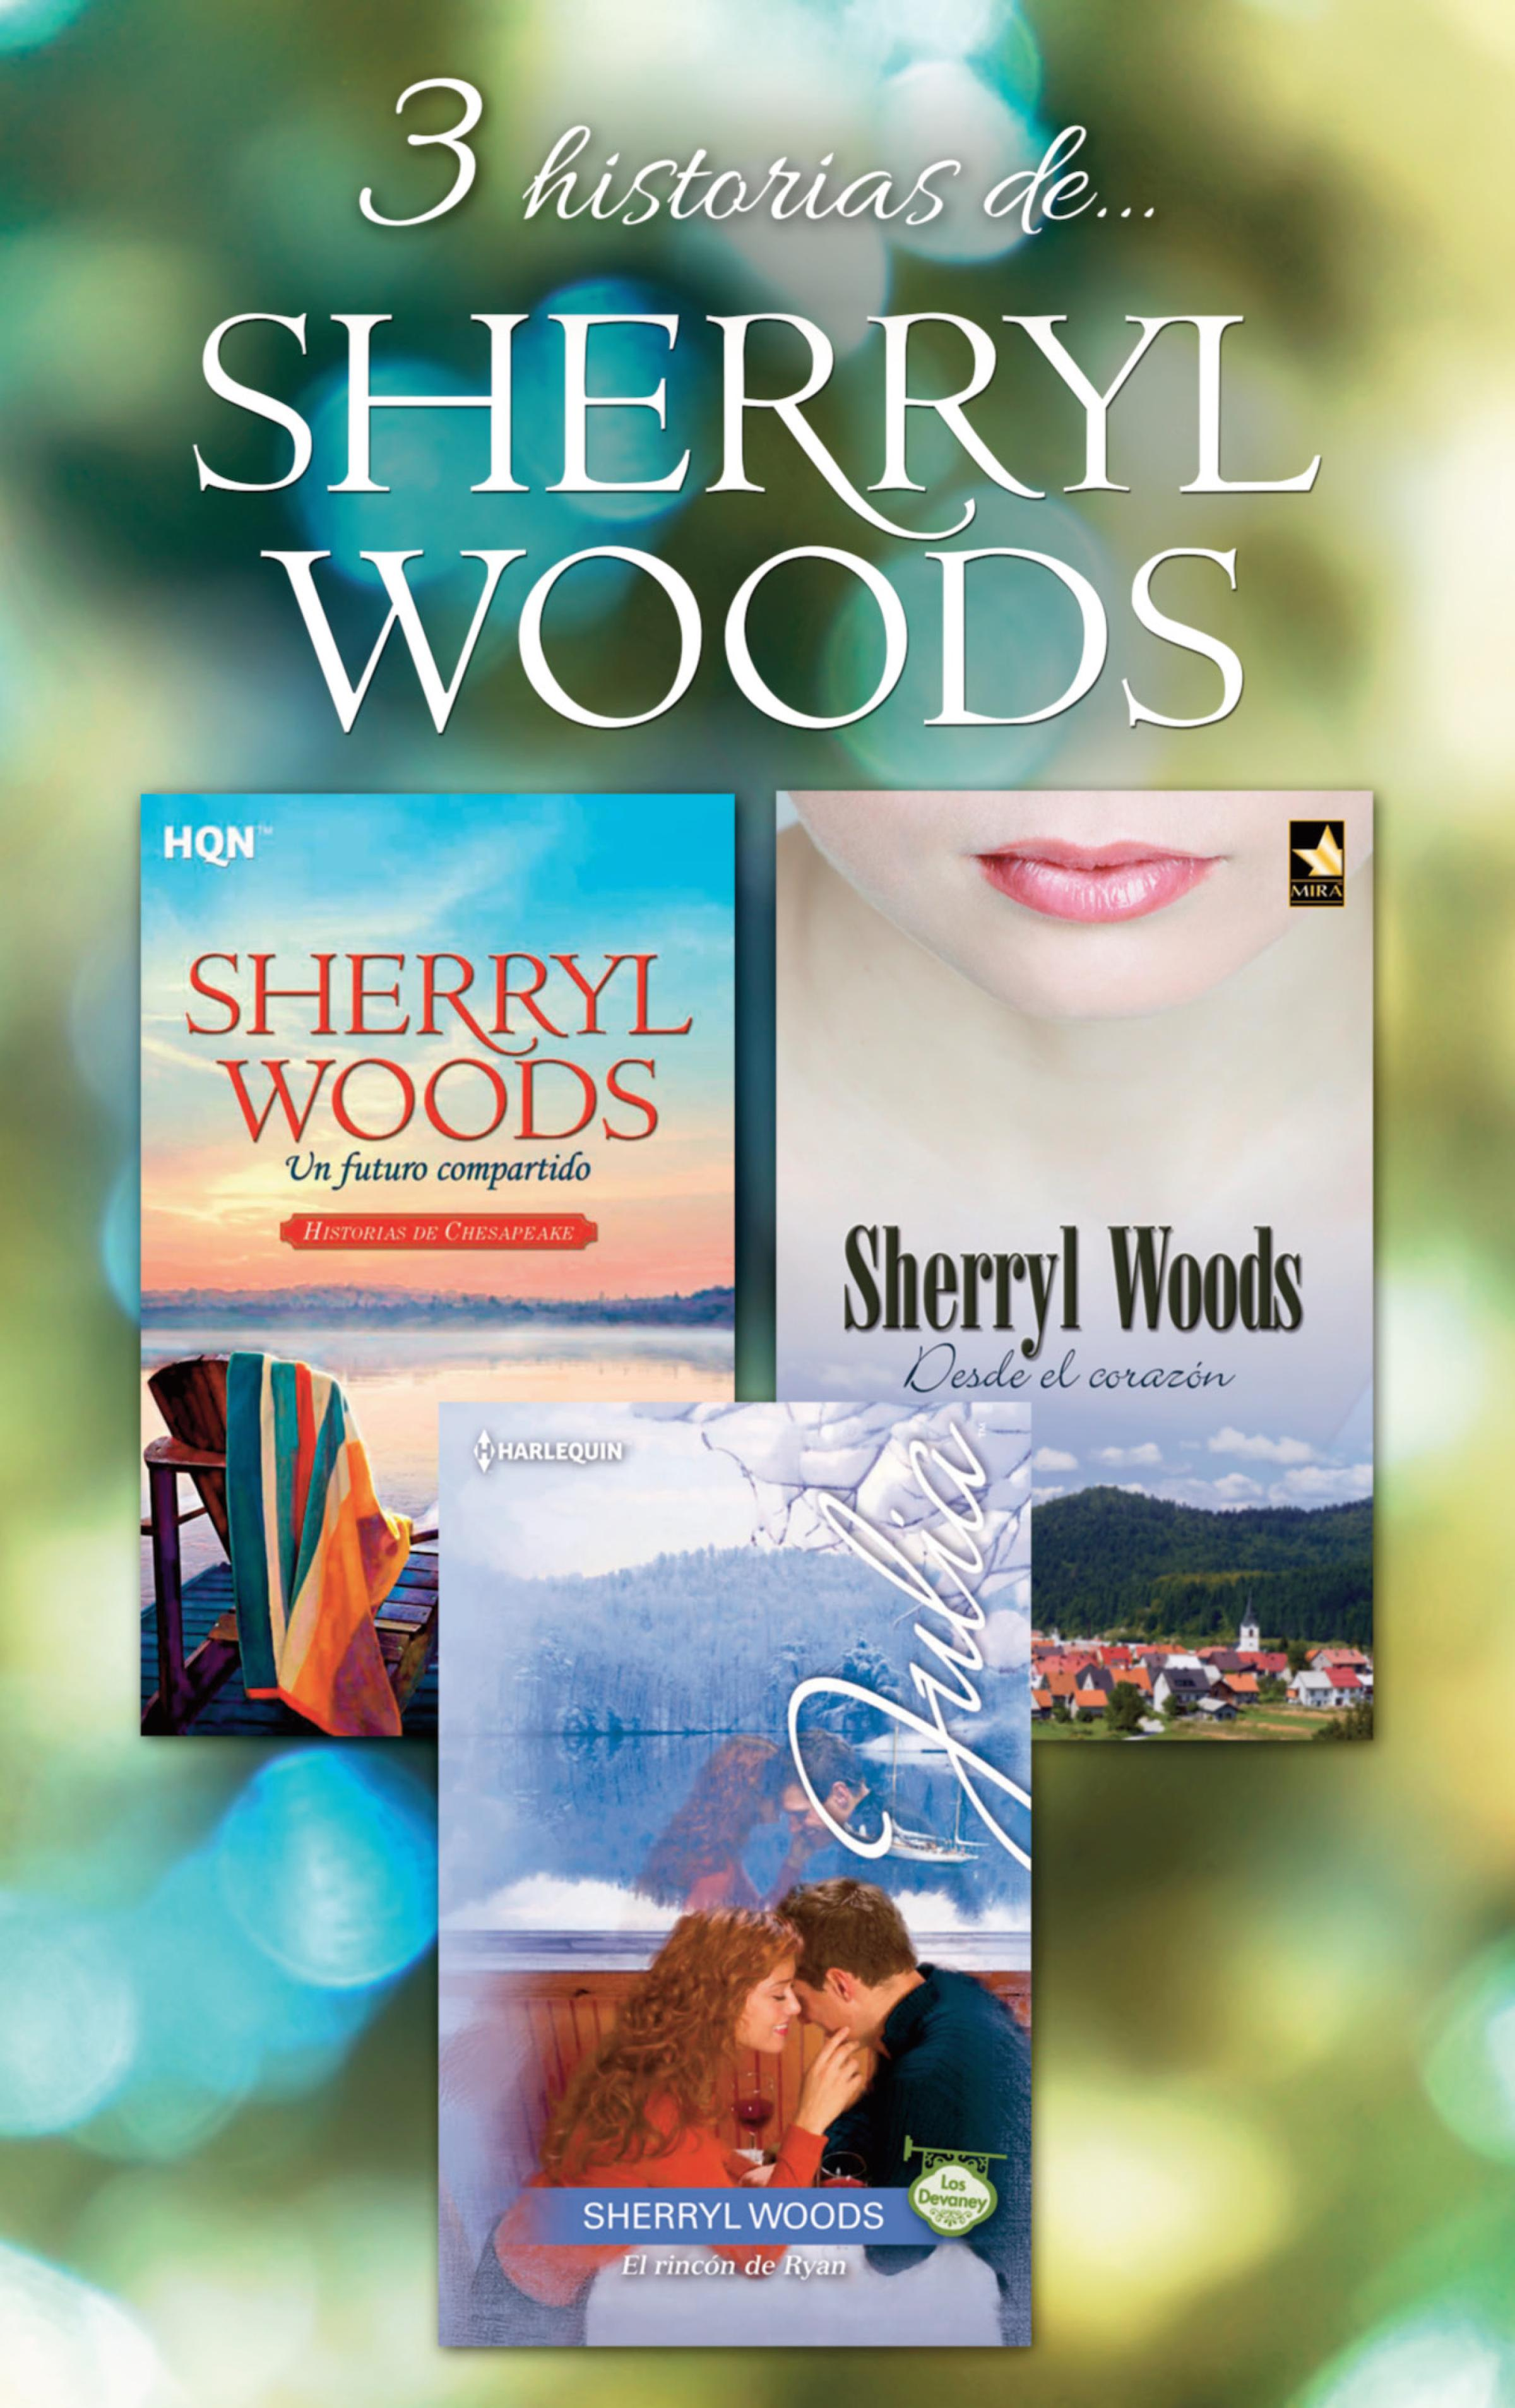 Sherryl Woods Pack Sherryl Woods недорого